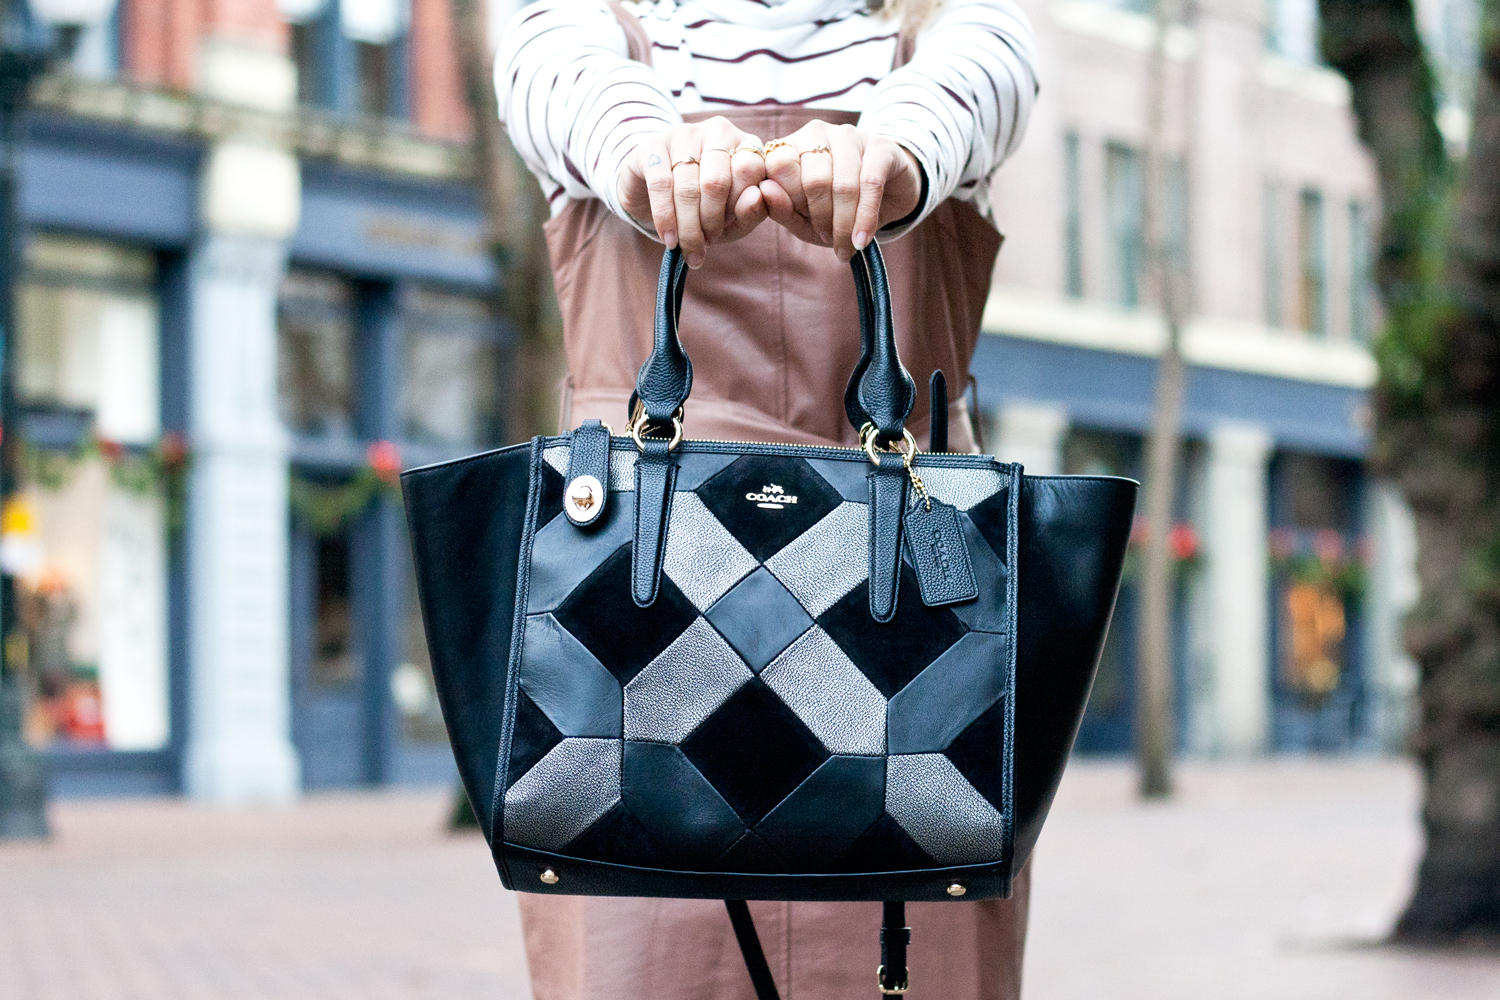 07seattle-pioneersquare-coach-patchwork-leather-satchel-travel-style-fashion